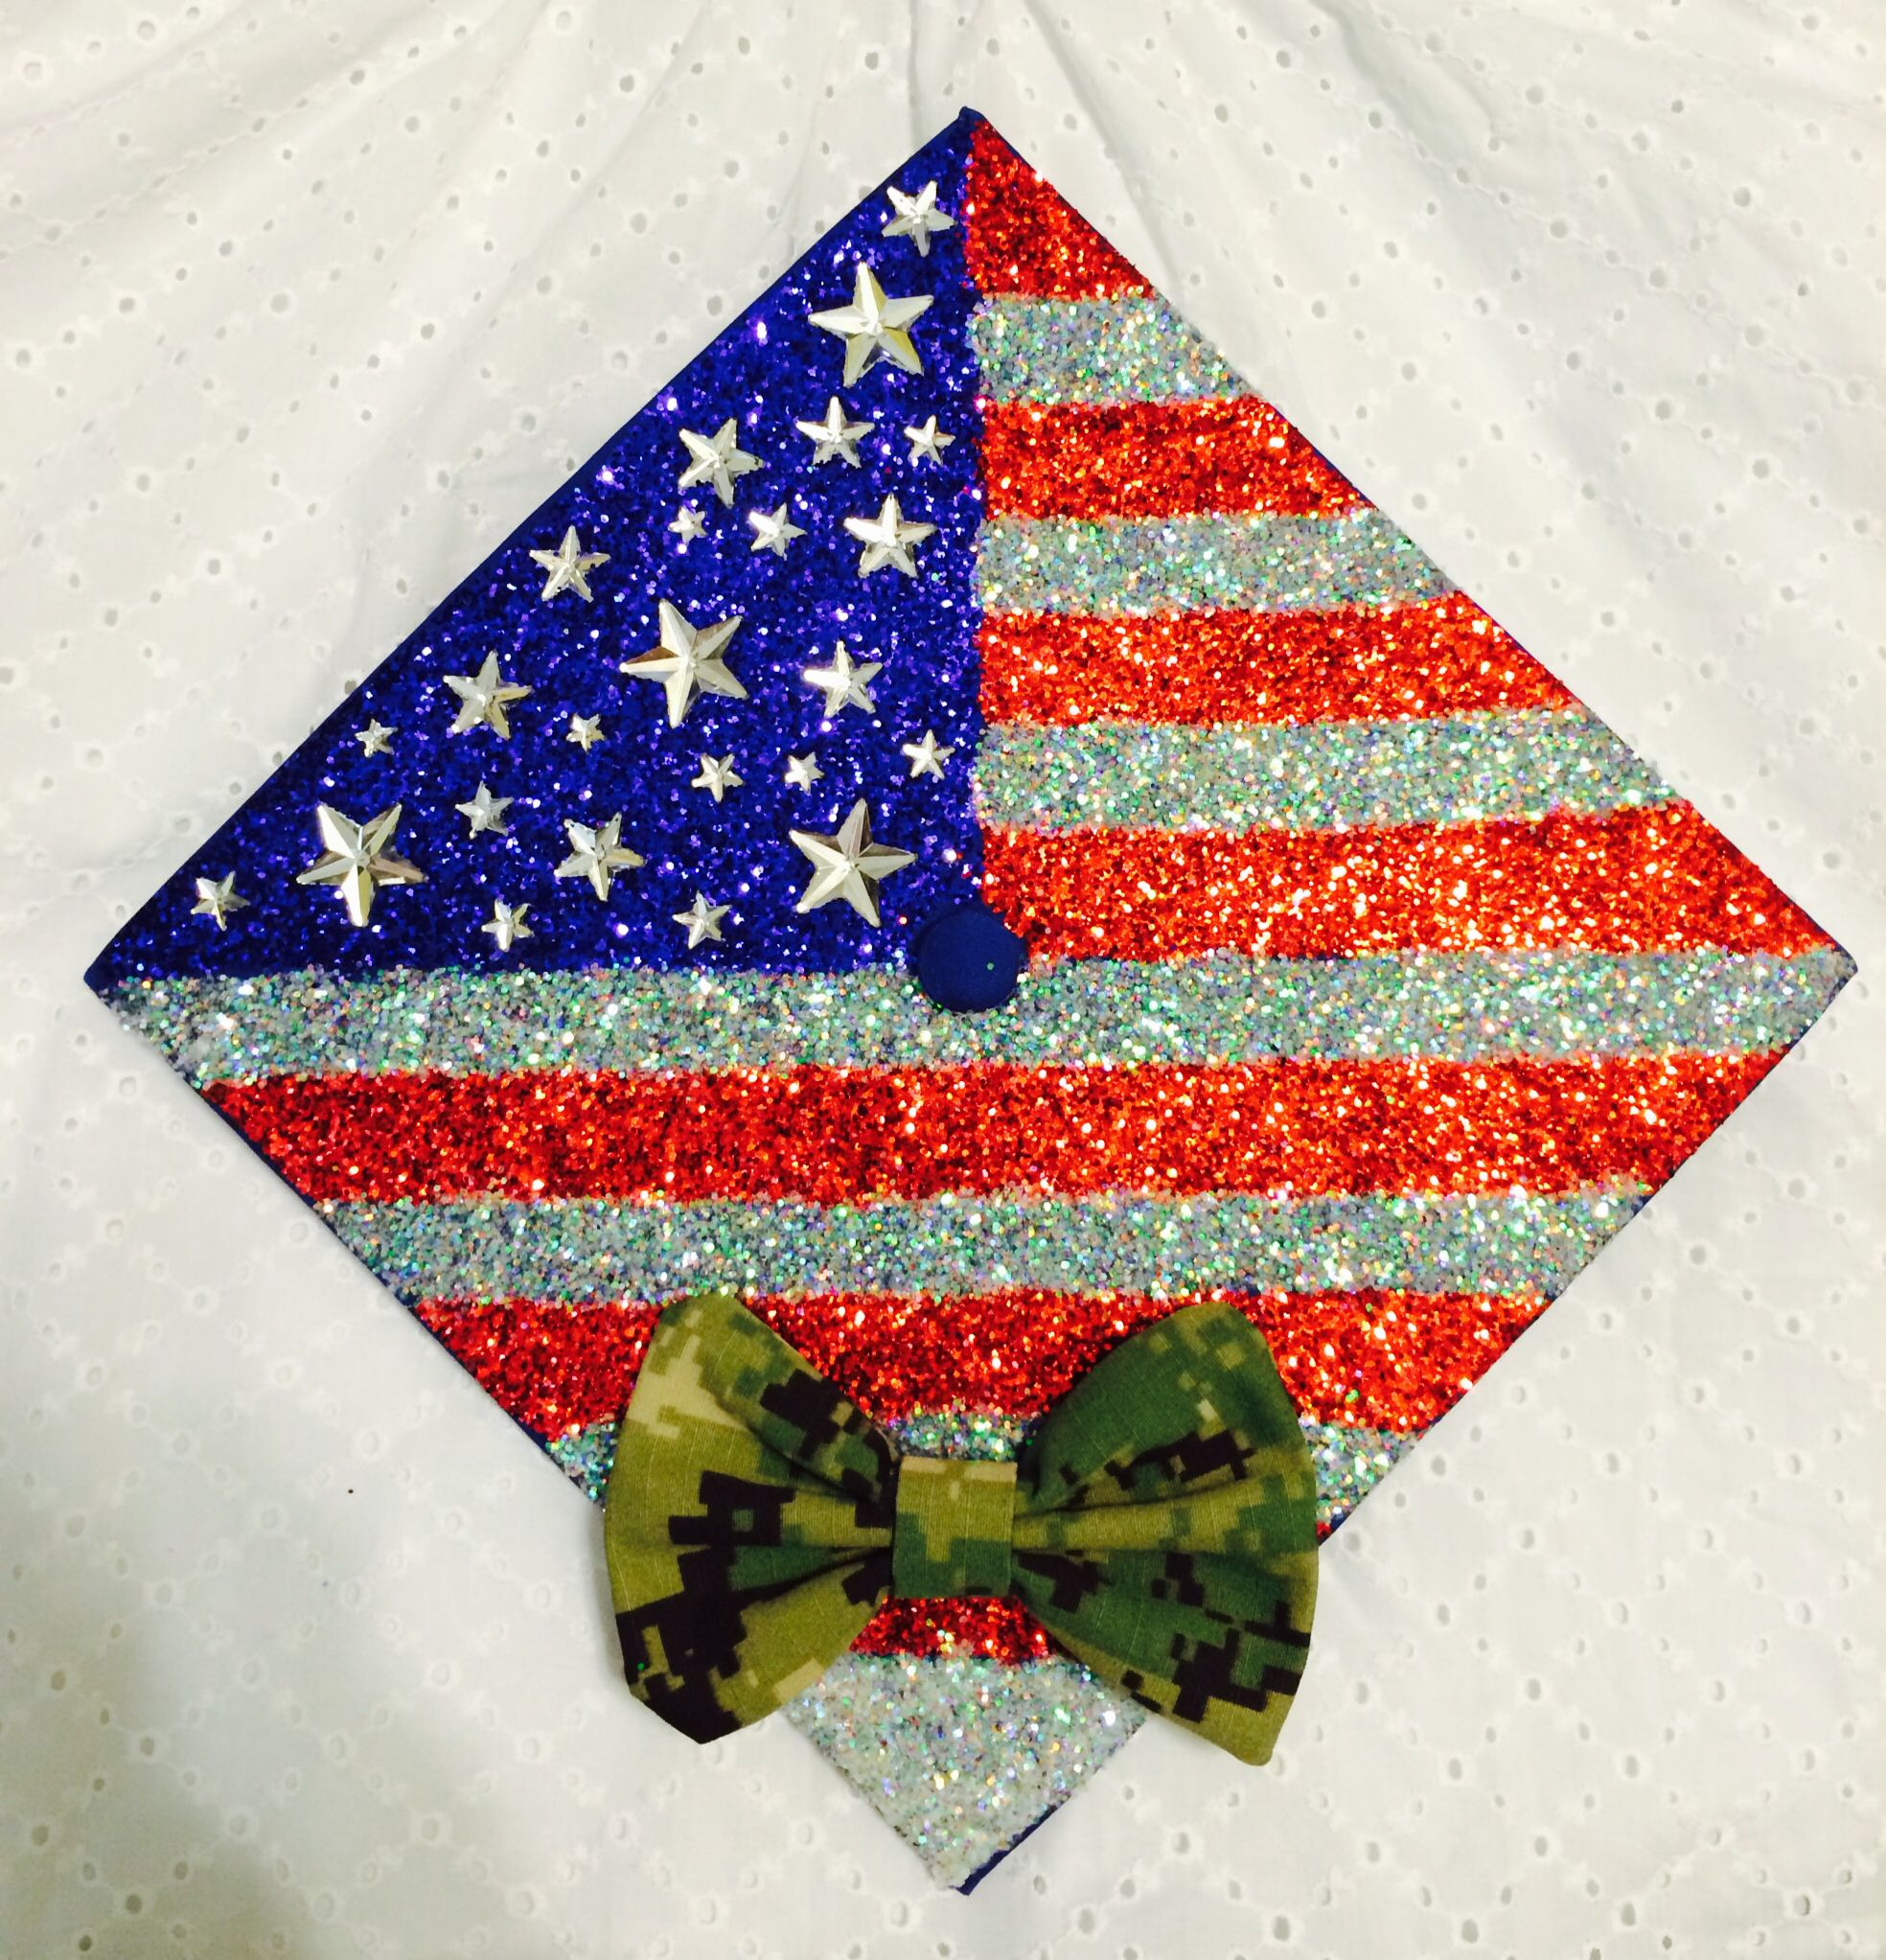 Flag Design Ideas flag design e flag design ideas flags nail art design ideas 6 red peak Seabee Grad Cap Graduation American Flag Redneck Navy Design